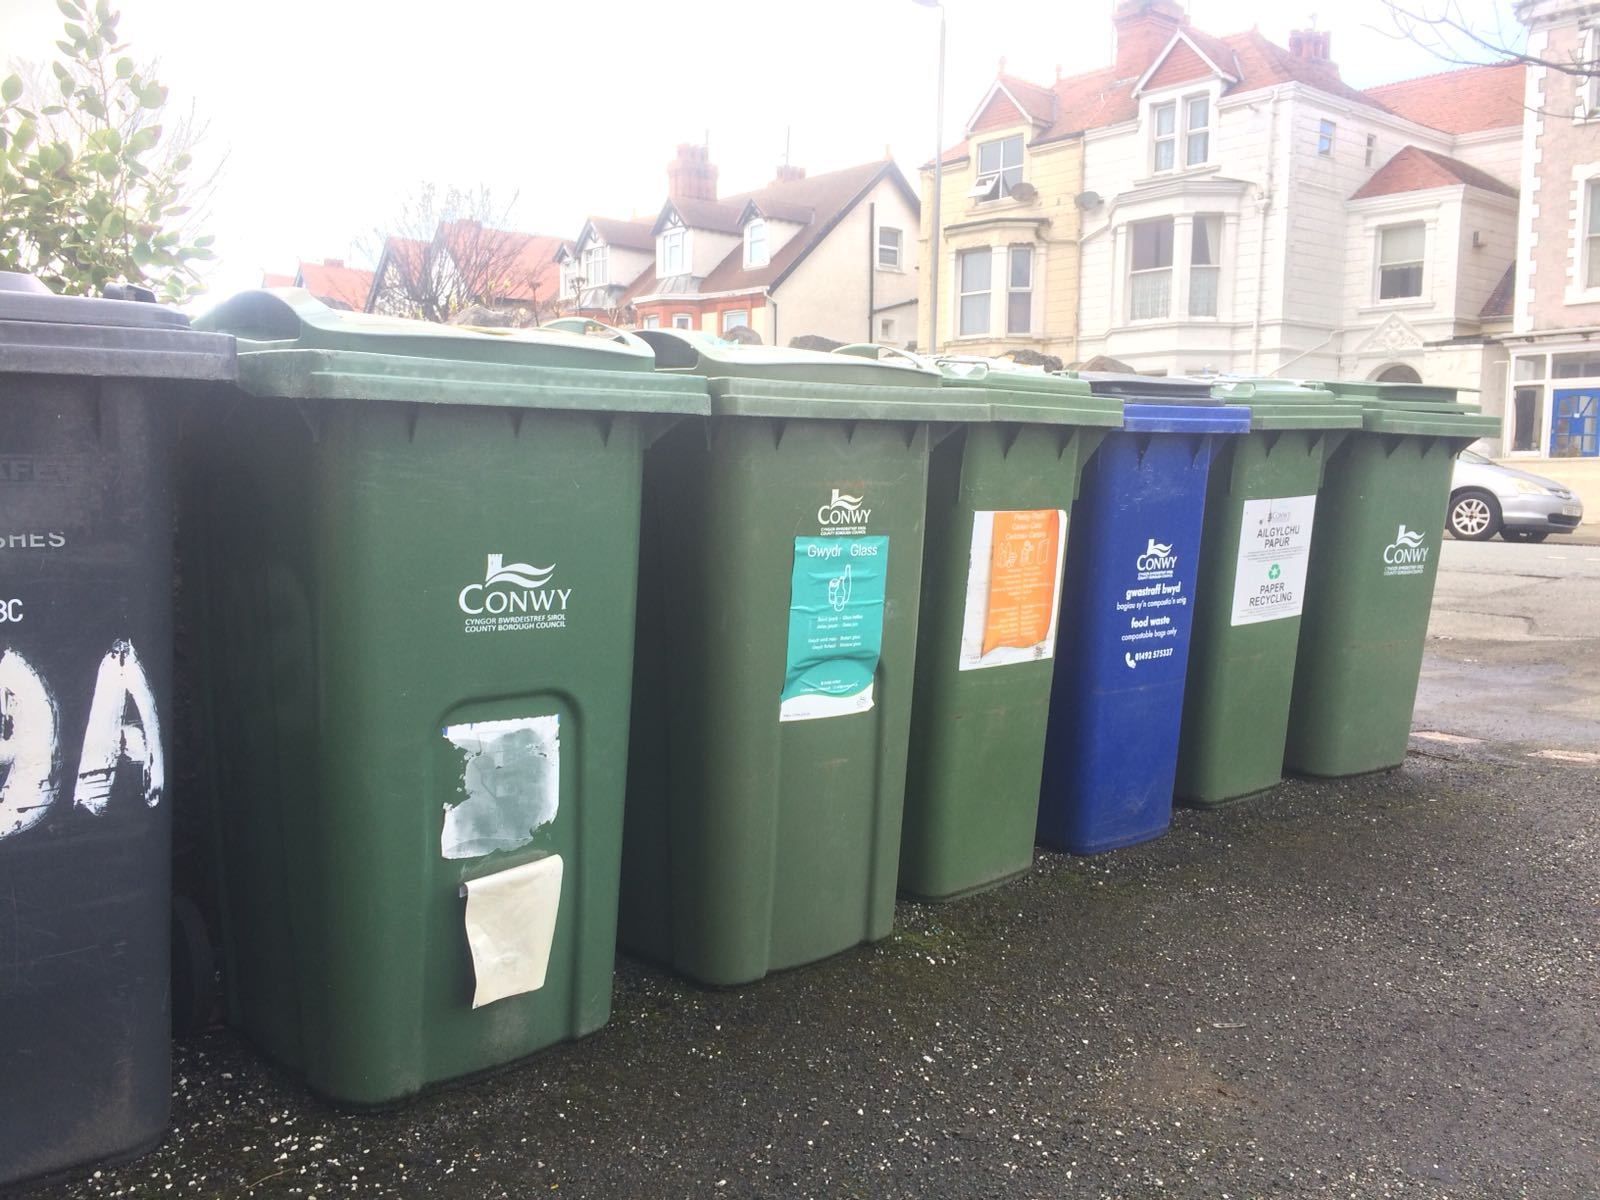 Cony County Borough Council bins. Picture; Kerry Roberts